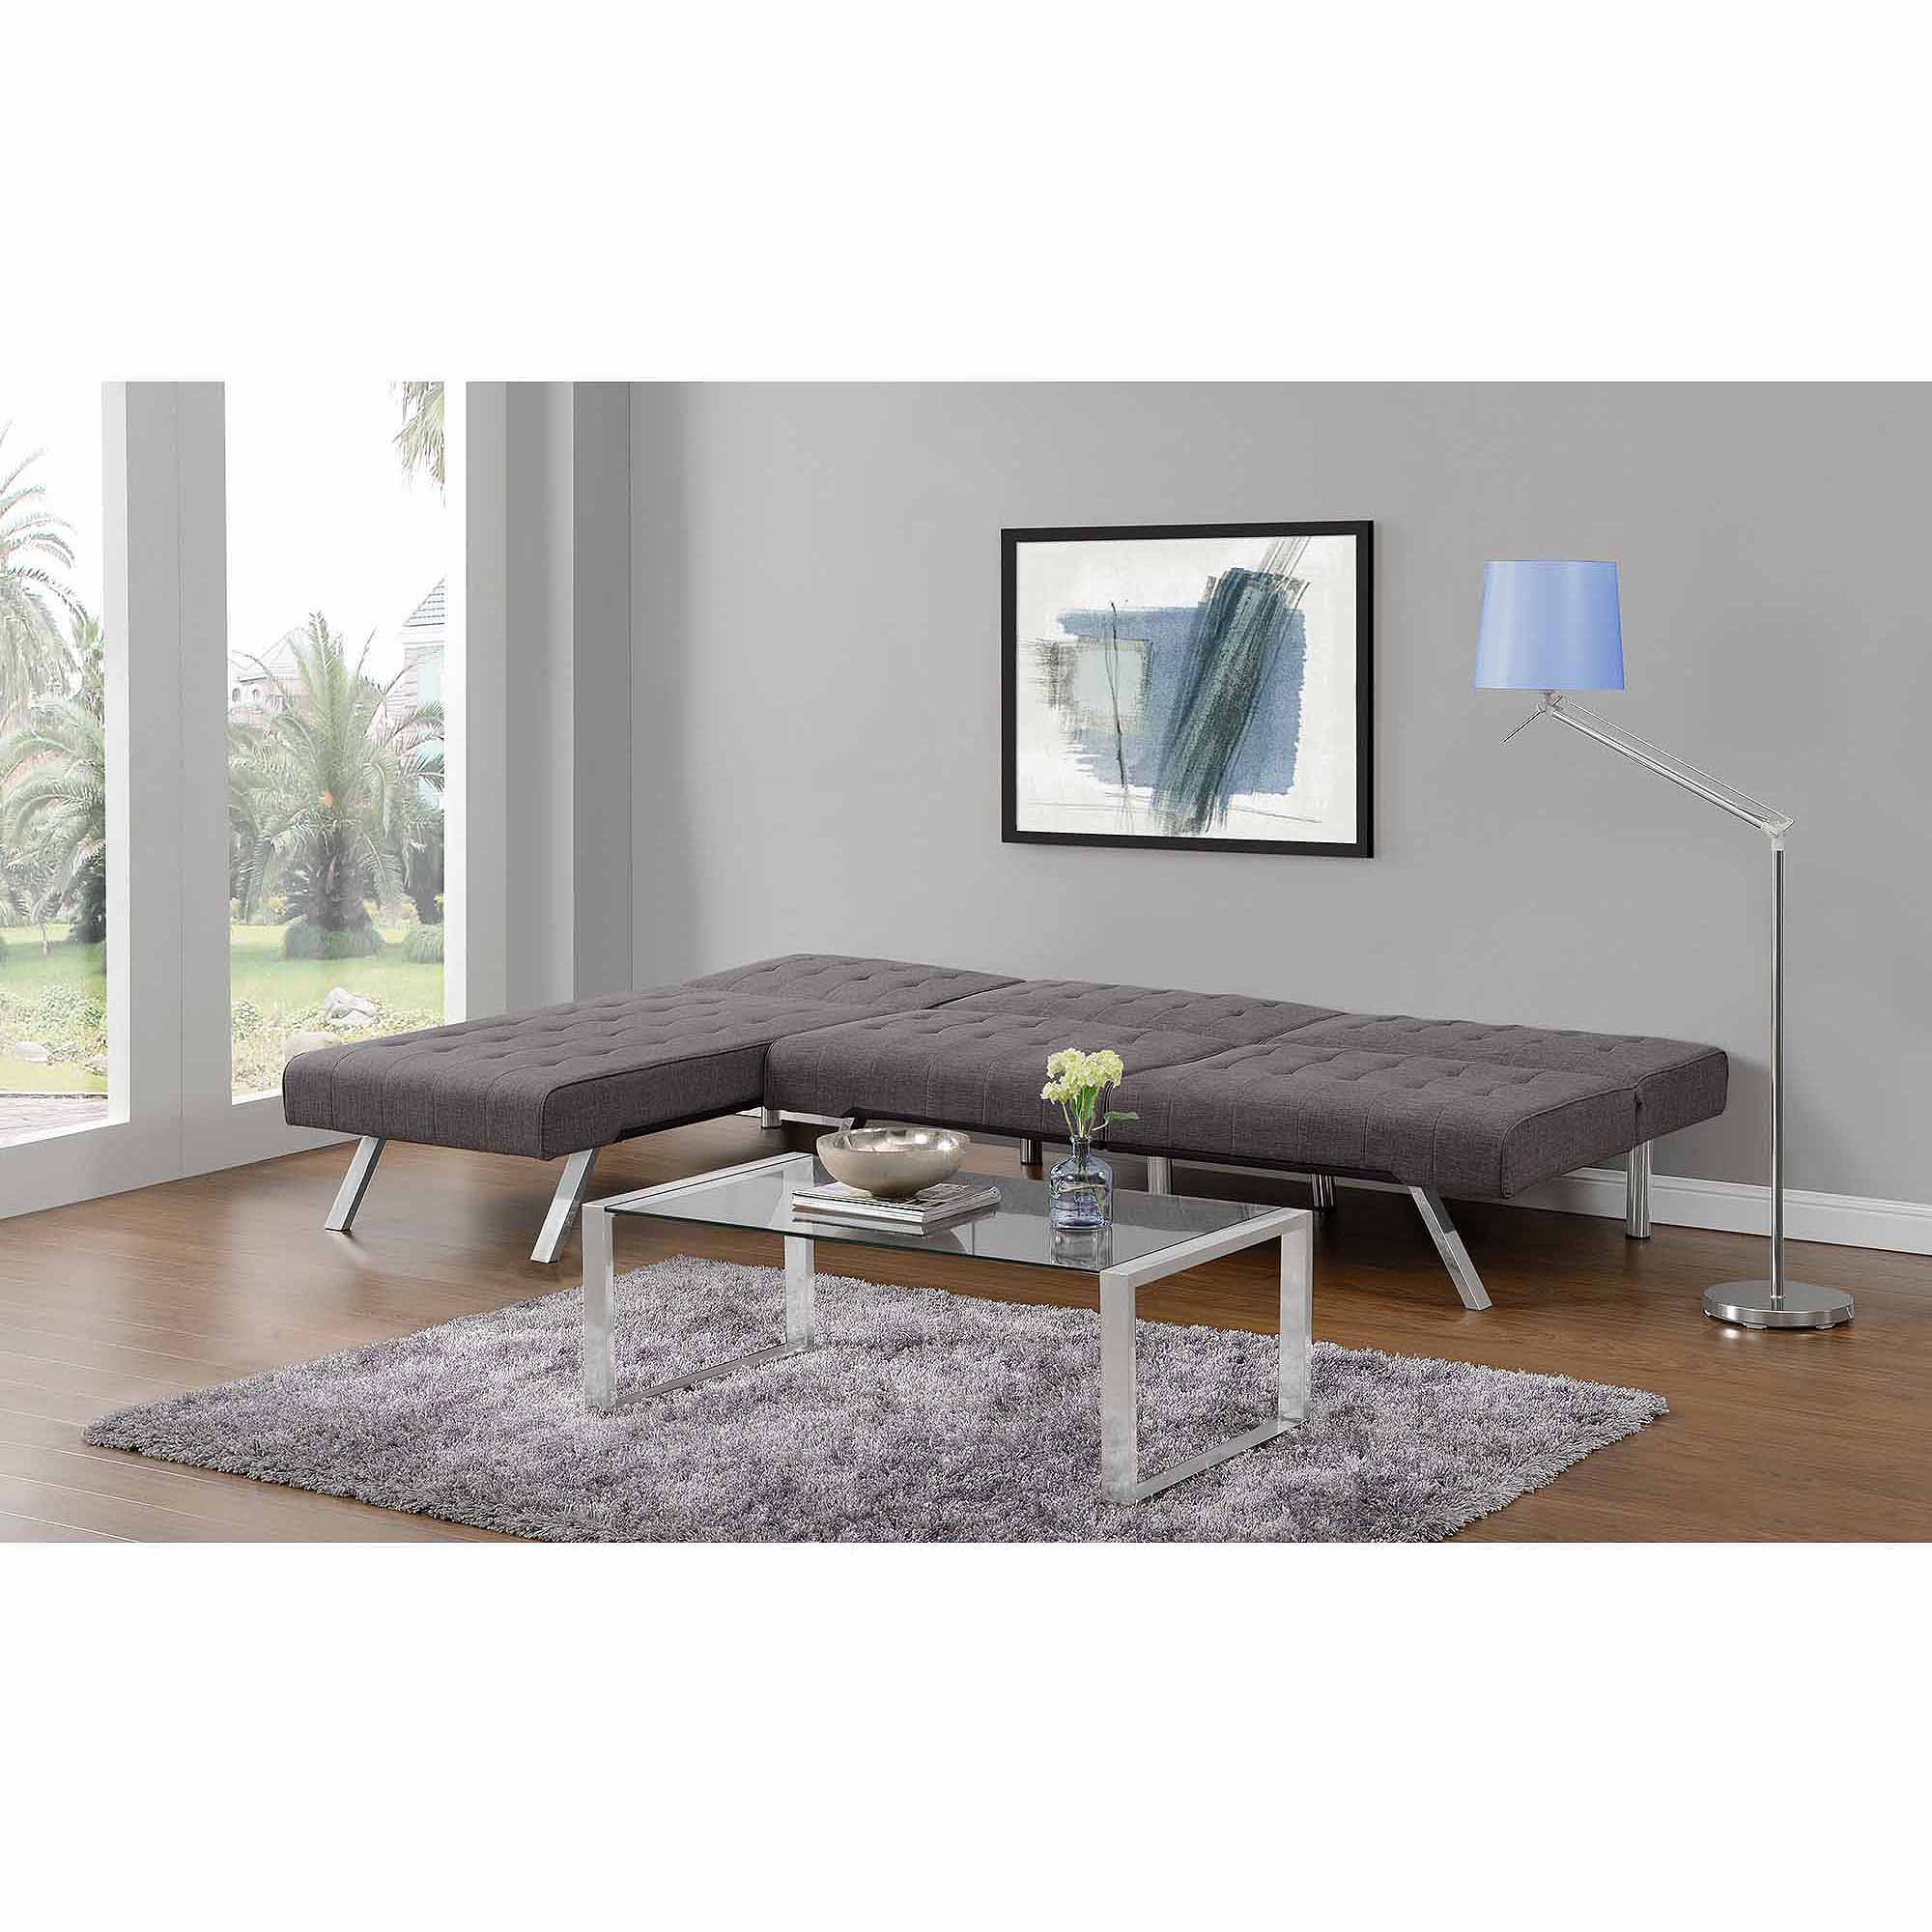 Convertible Futon Sofa Couch Seat Chair Living Room Furniture New Home Line Gray